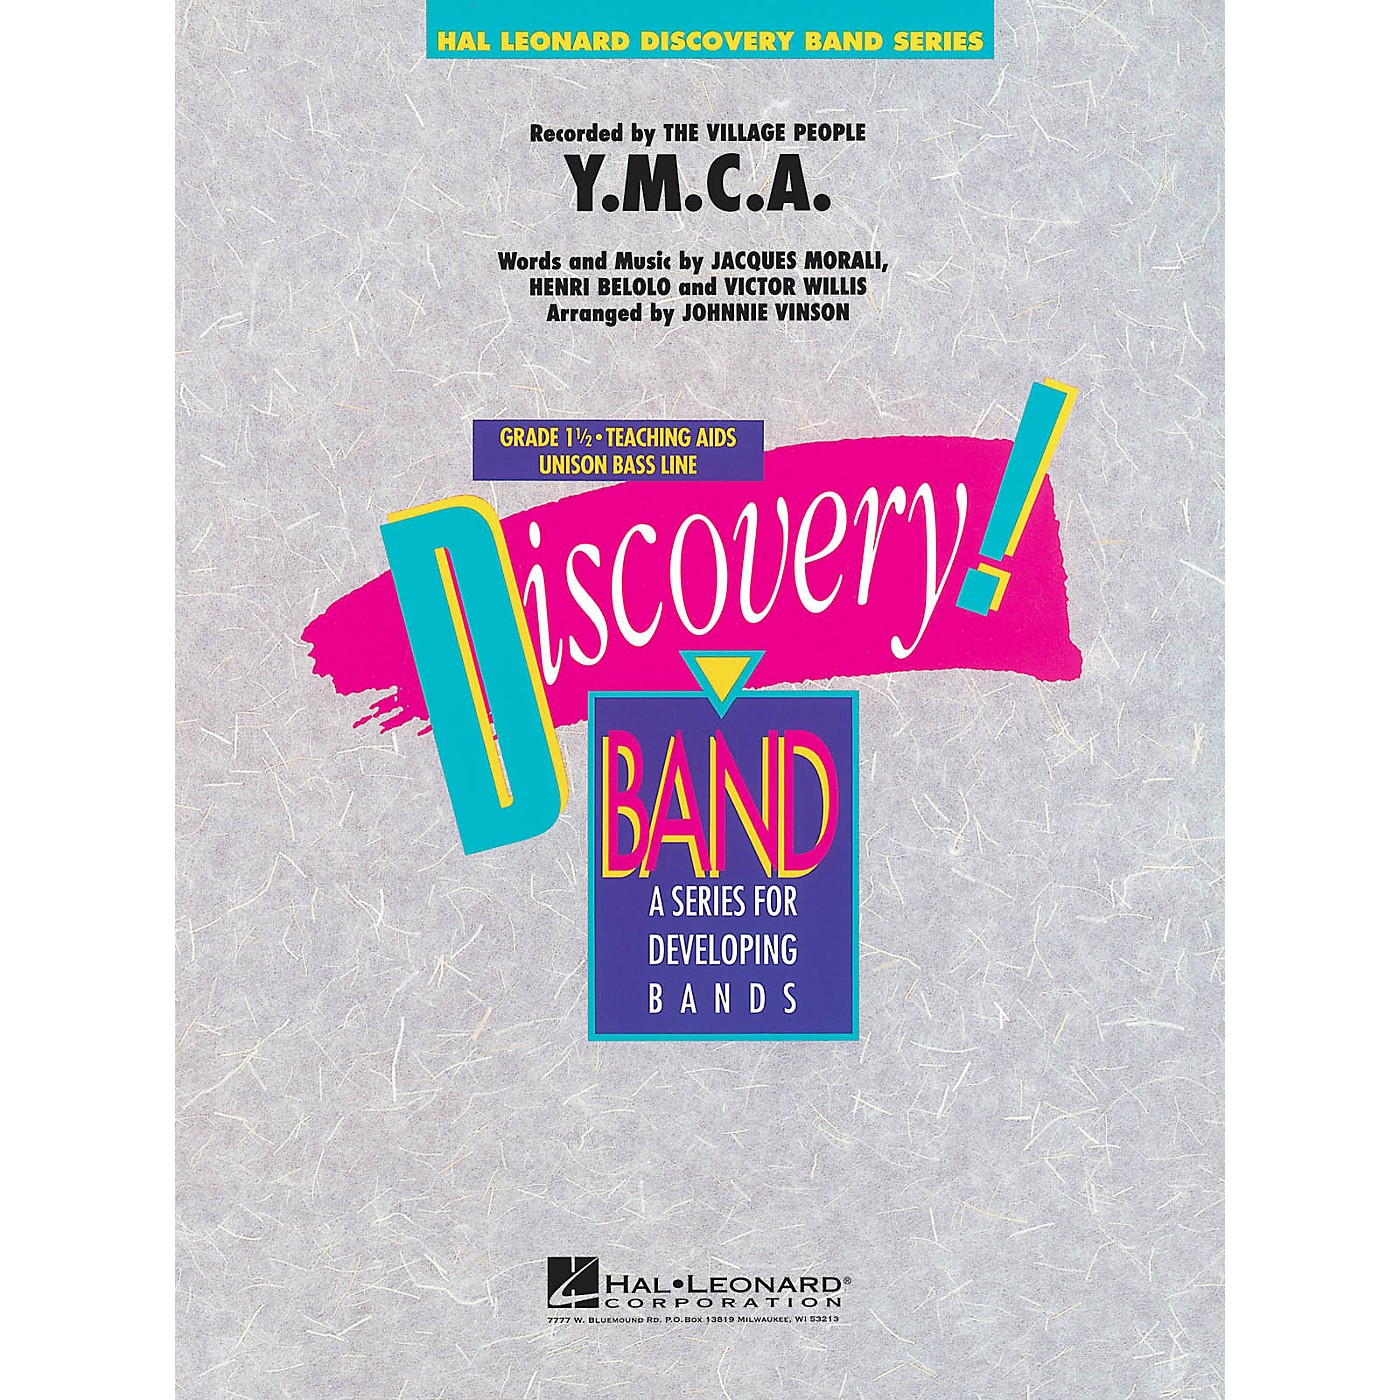 Hal Leonard Y.M.C.A. Concert Band Level 1.5 by The Village People Arranged by Johnnie Vinson thumbnail